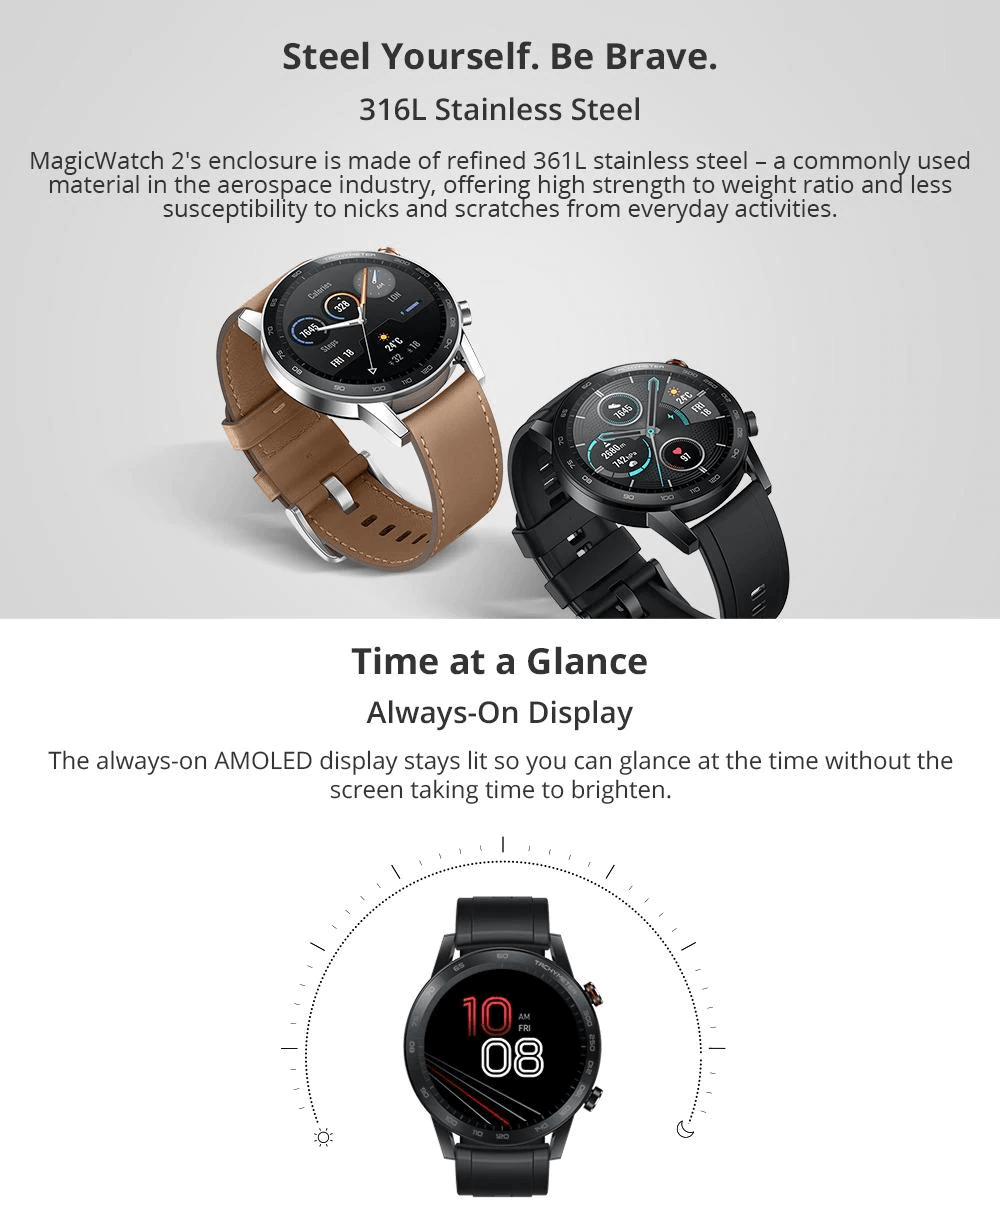 Huawei Honor Magic Watch 2 Features Steel Body